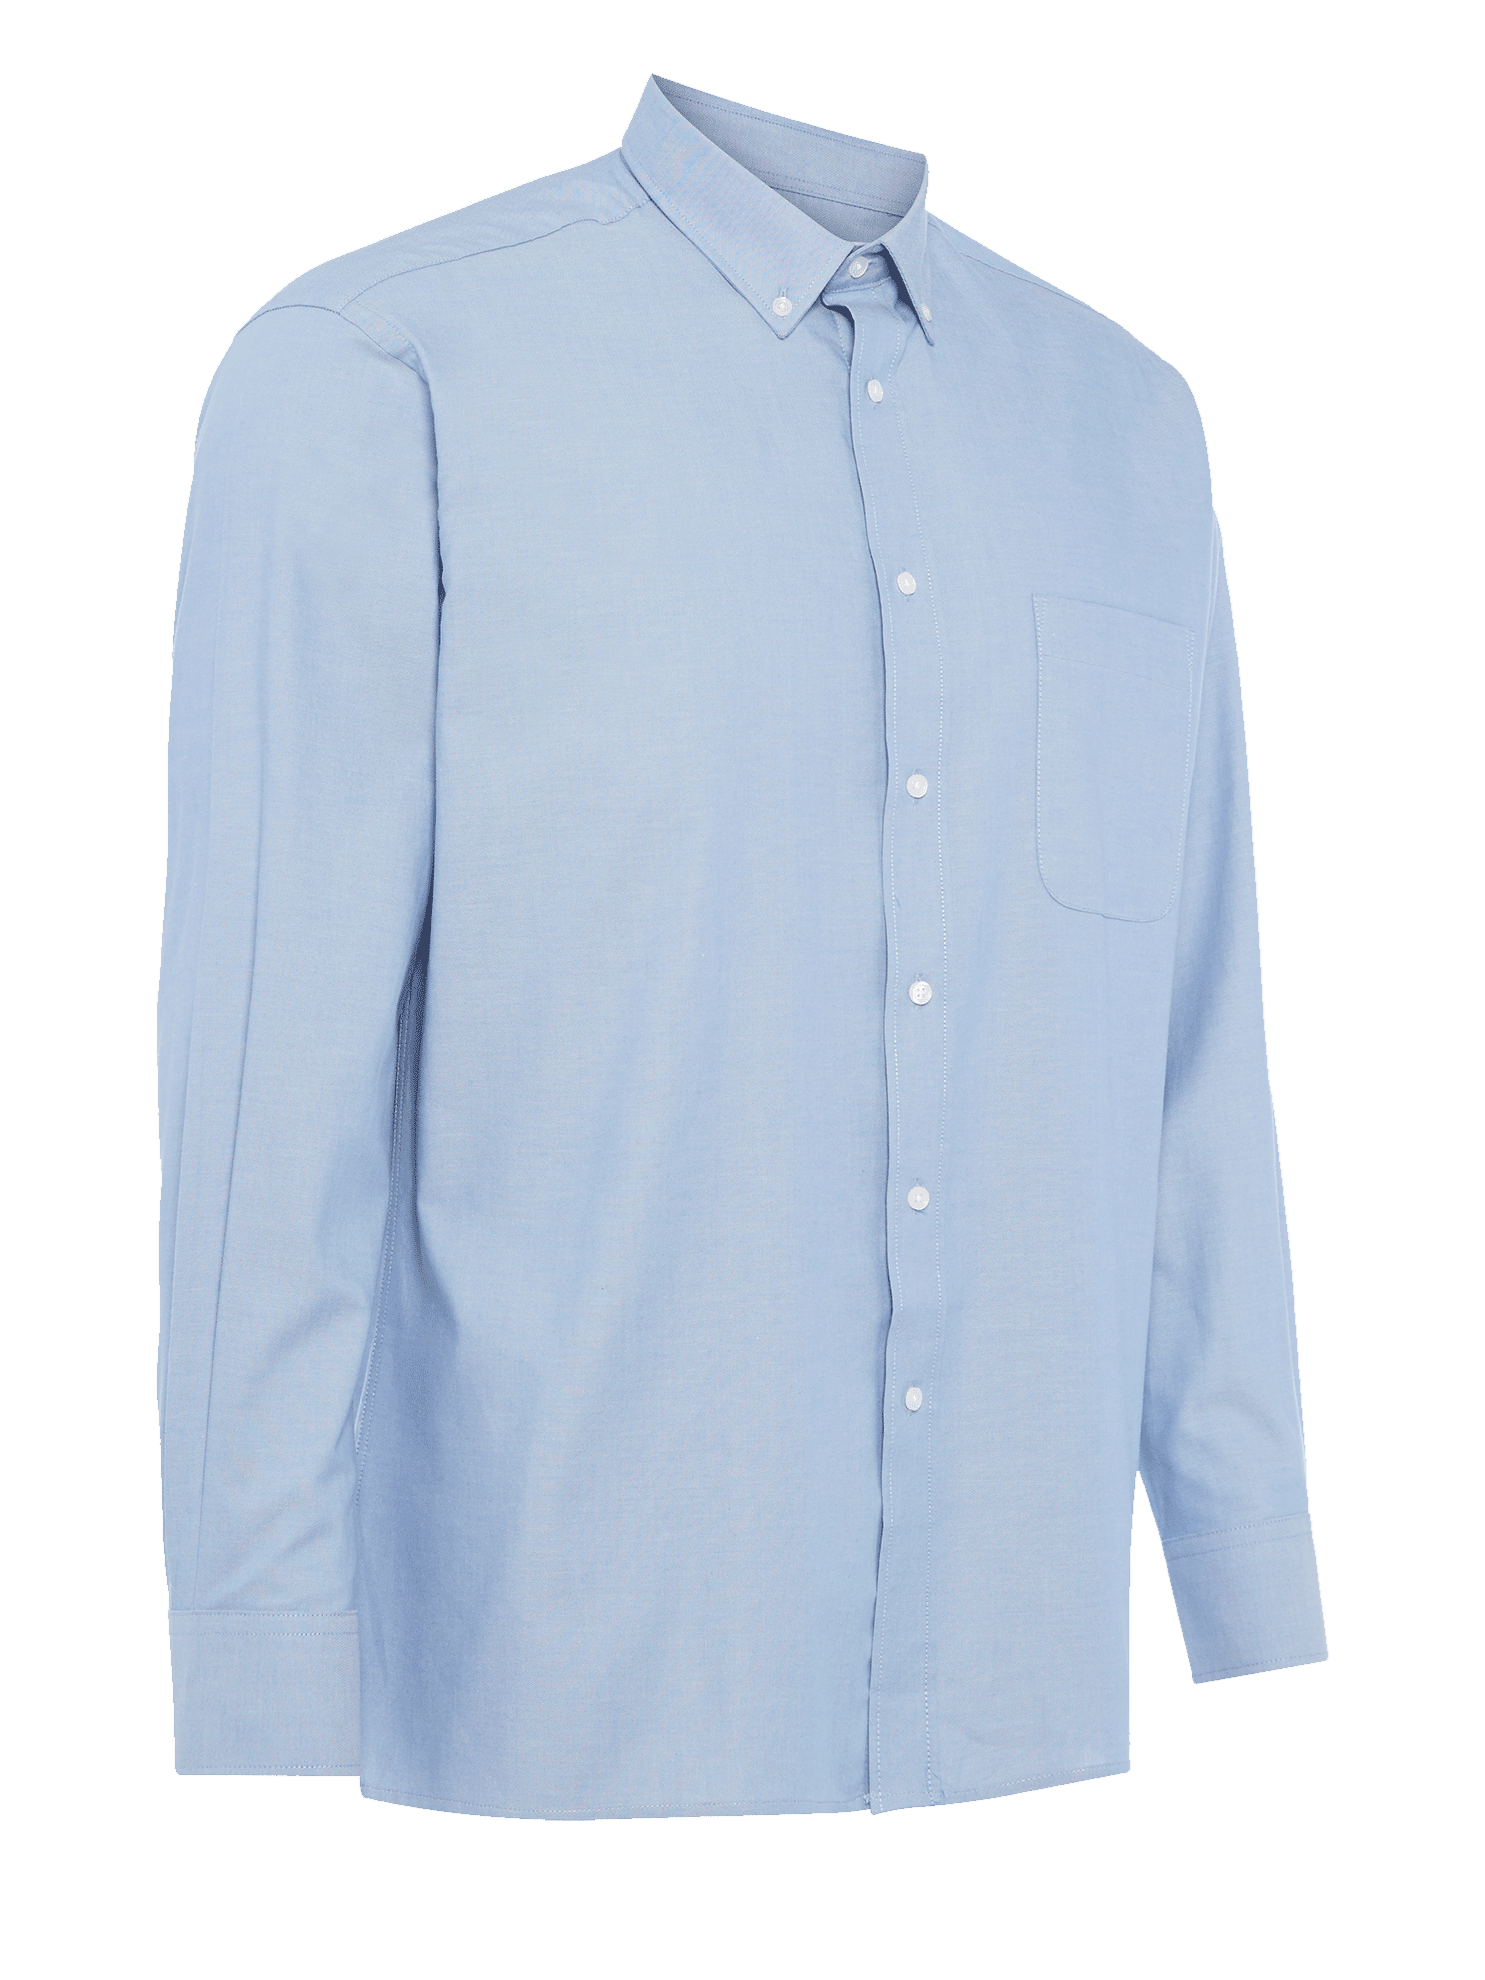 Picture of Long Sleeve Oxford Shirt - Light Blue